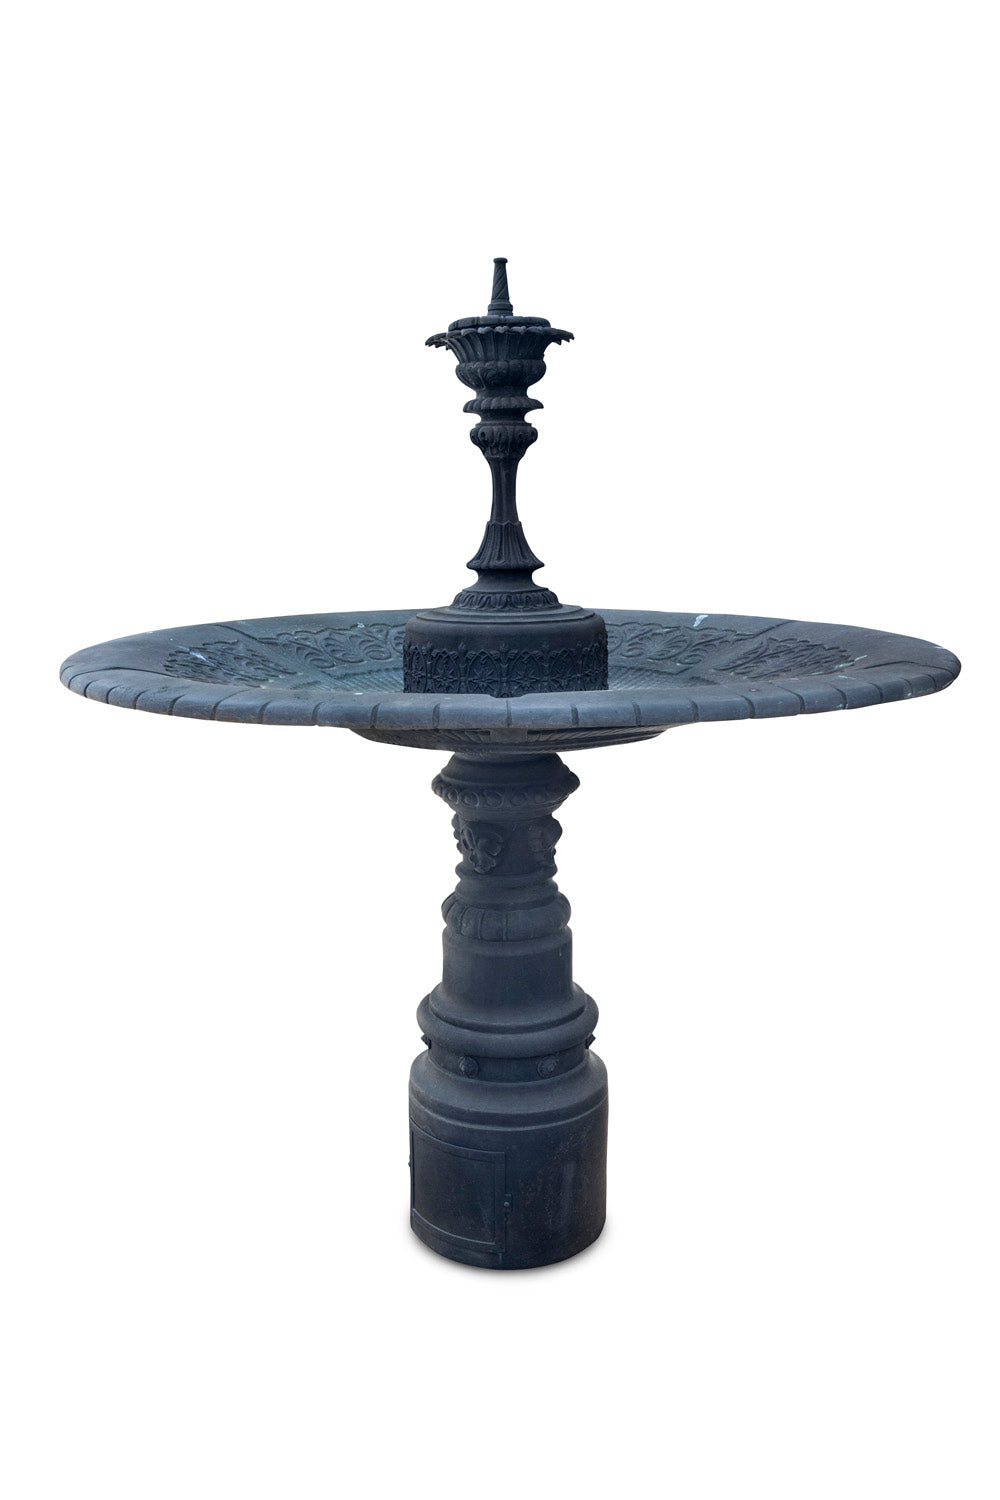 Custom Bronze Fountain